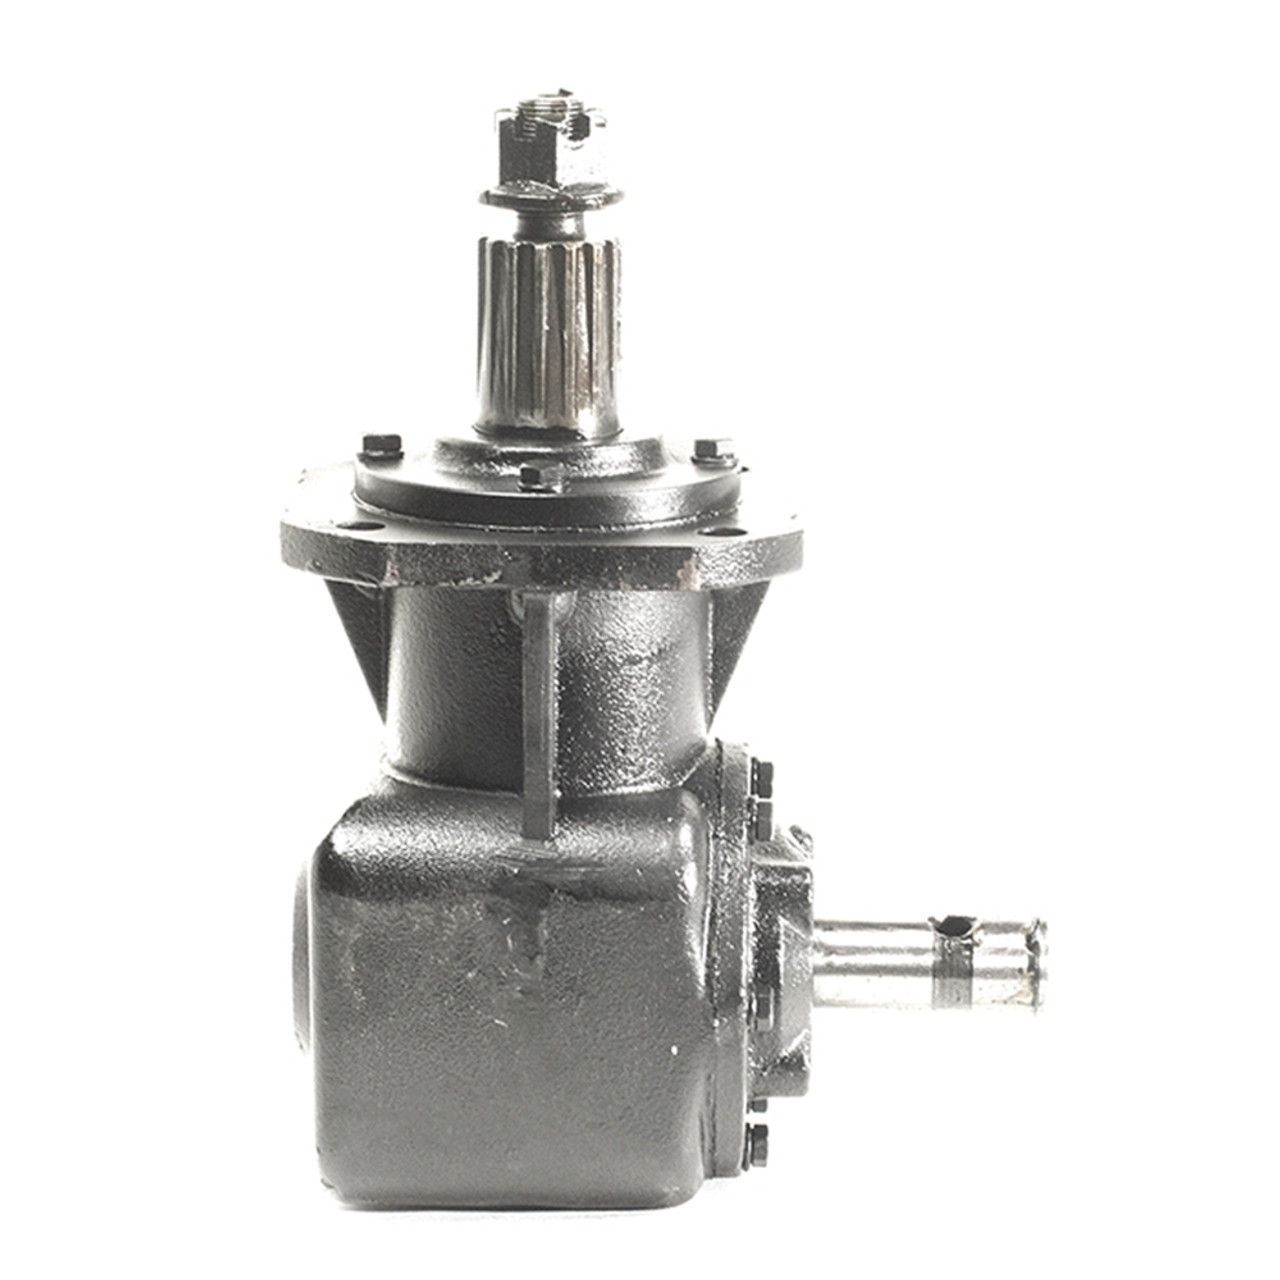 GEARBOX 401-0172-04